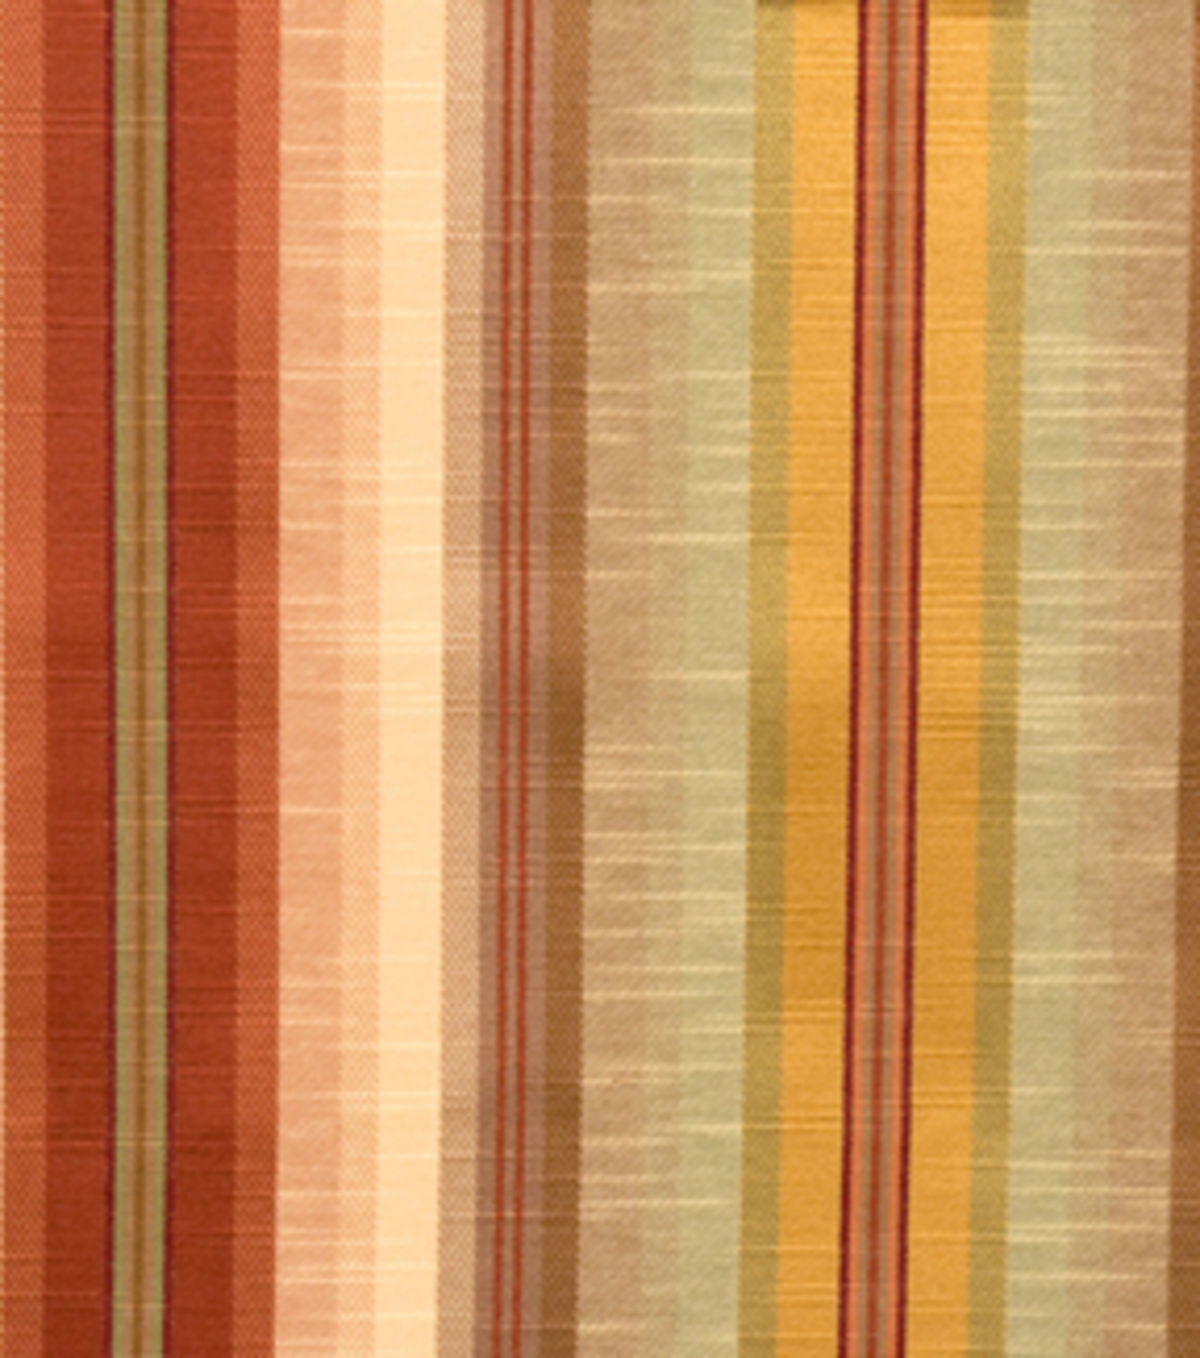 Home Decor 8\u0022x8\u0022 Fabric Swatch-Eaton Square Hatfield Copperdust